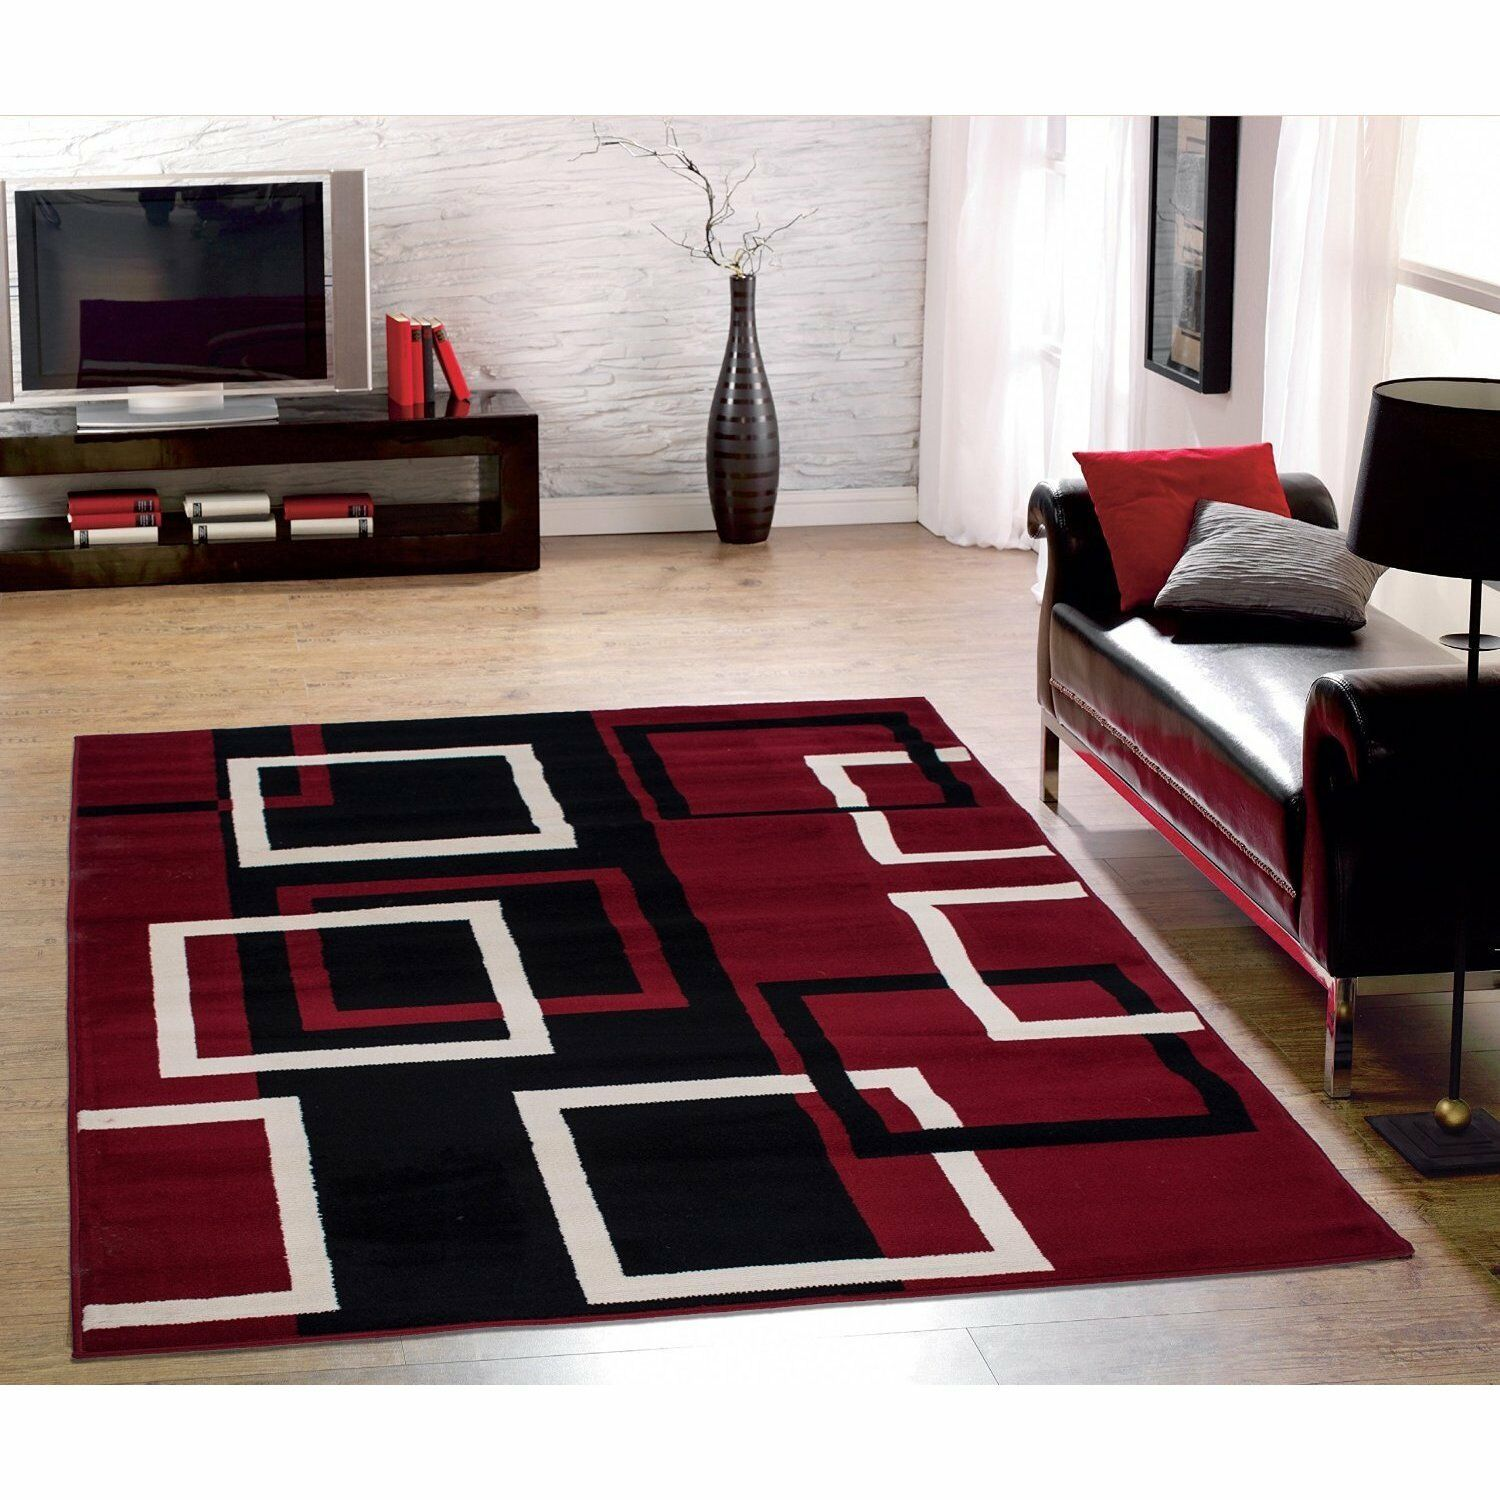 Sweet Home Modern Bo Dark Red Area Rug 5 X 7 6 47 44 Of See More